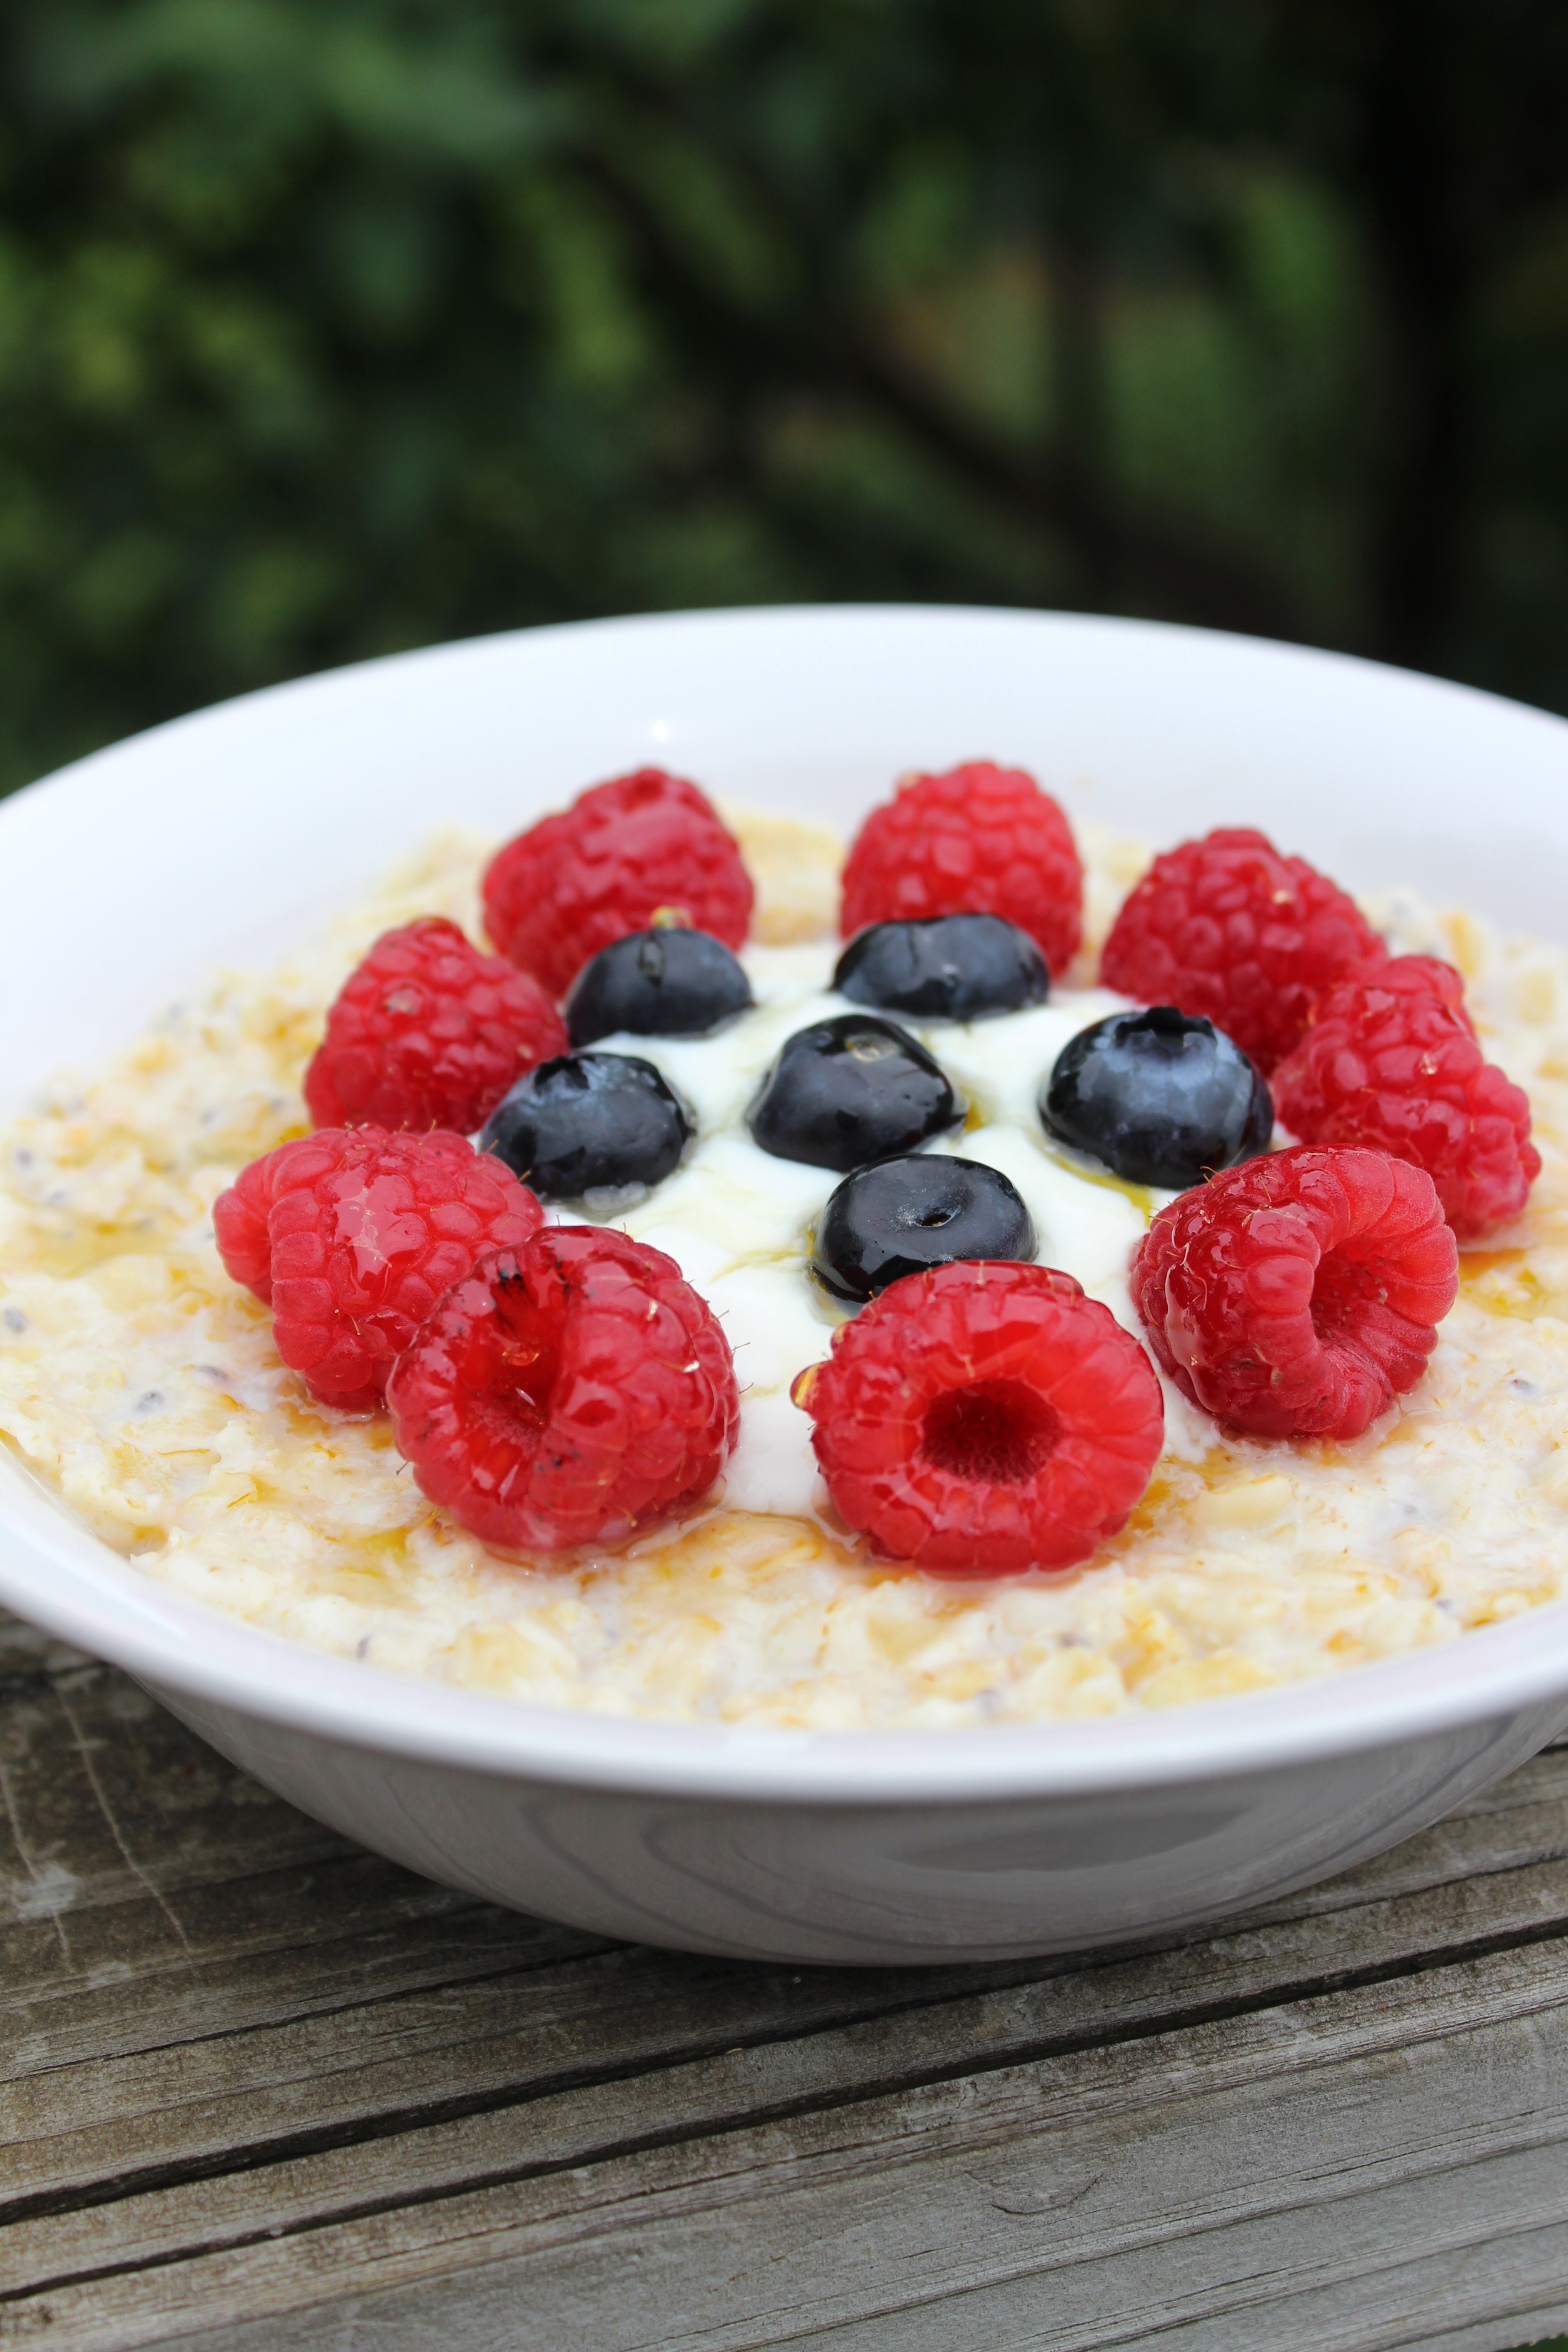 oats for athletes